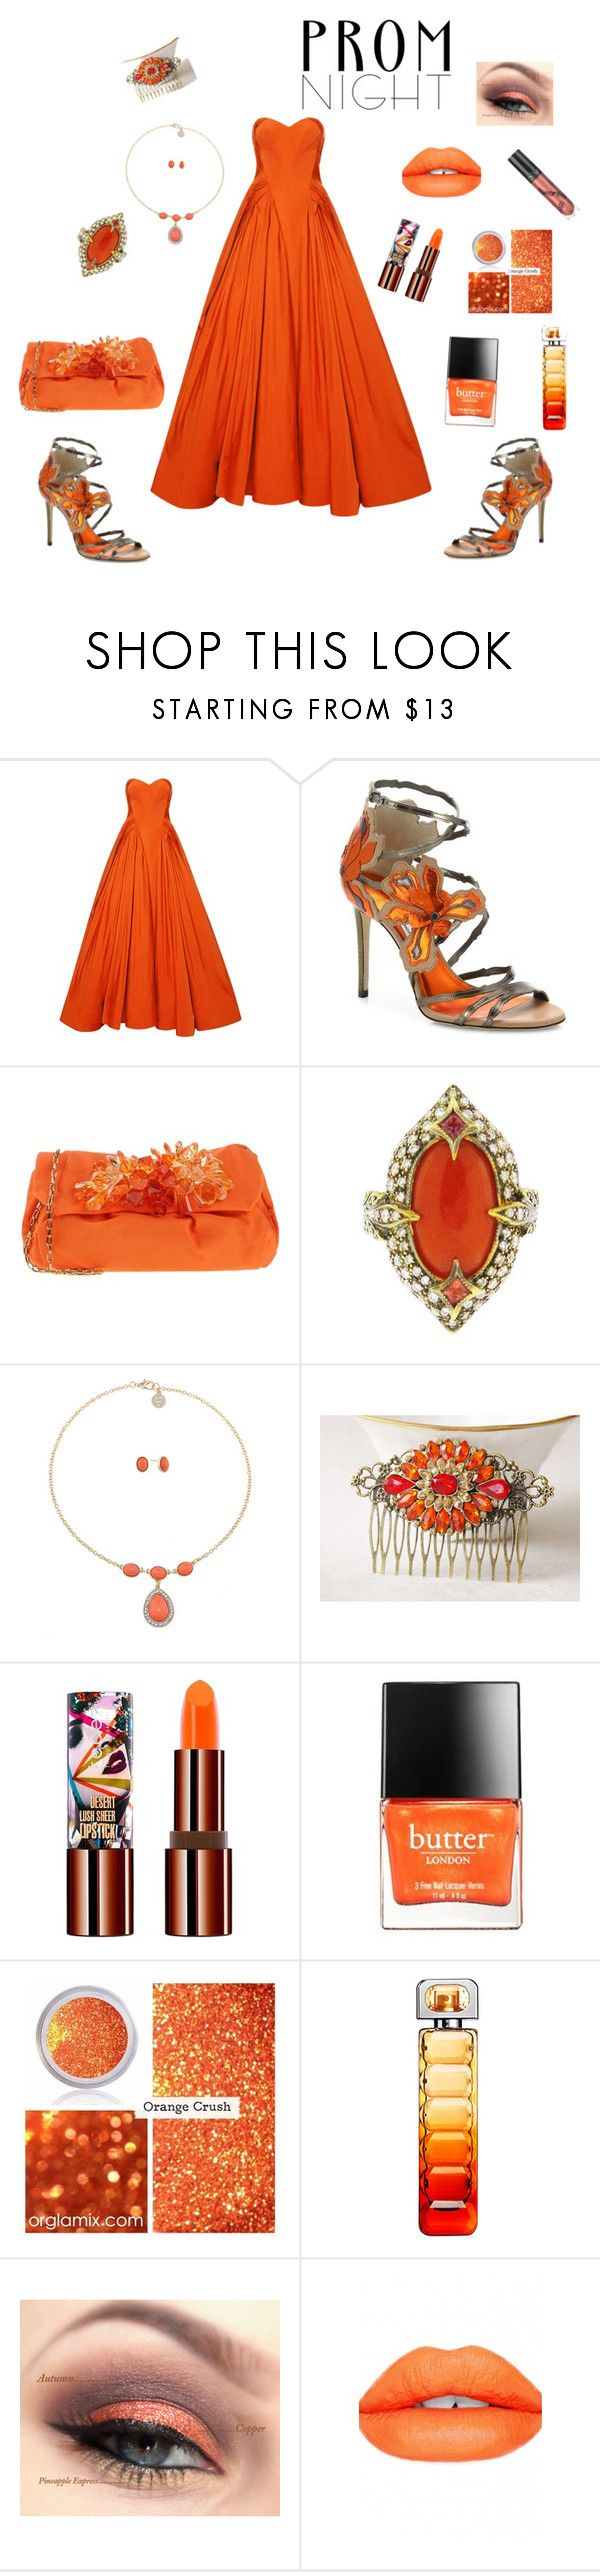 Orange Prom Dress by siriusfunbysheila1954 on Polyvore featuring Zac Posen, Jimmy Choo, P.A.R.O.S.H., Cathy Waterman, Liz Claiborne, Teeez, Sugarpill, BOSS Orange and Butter London